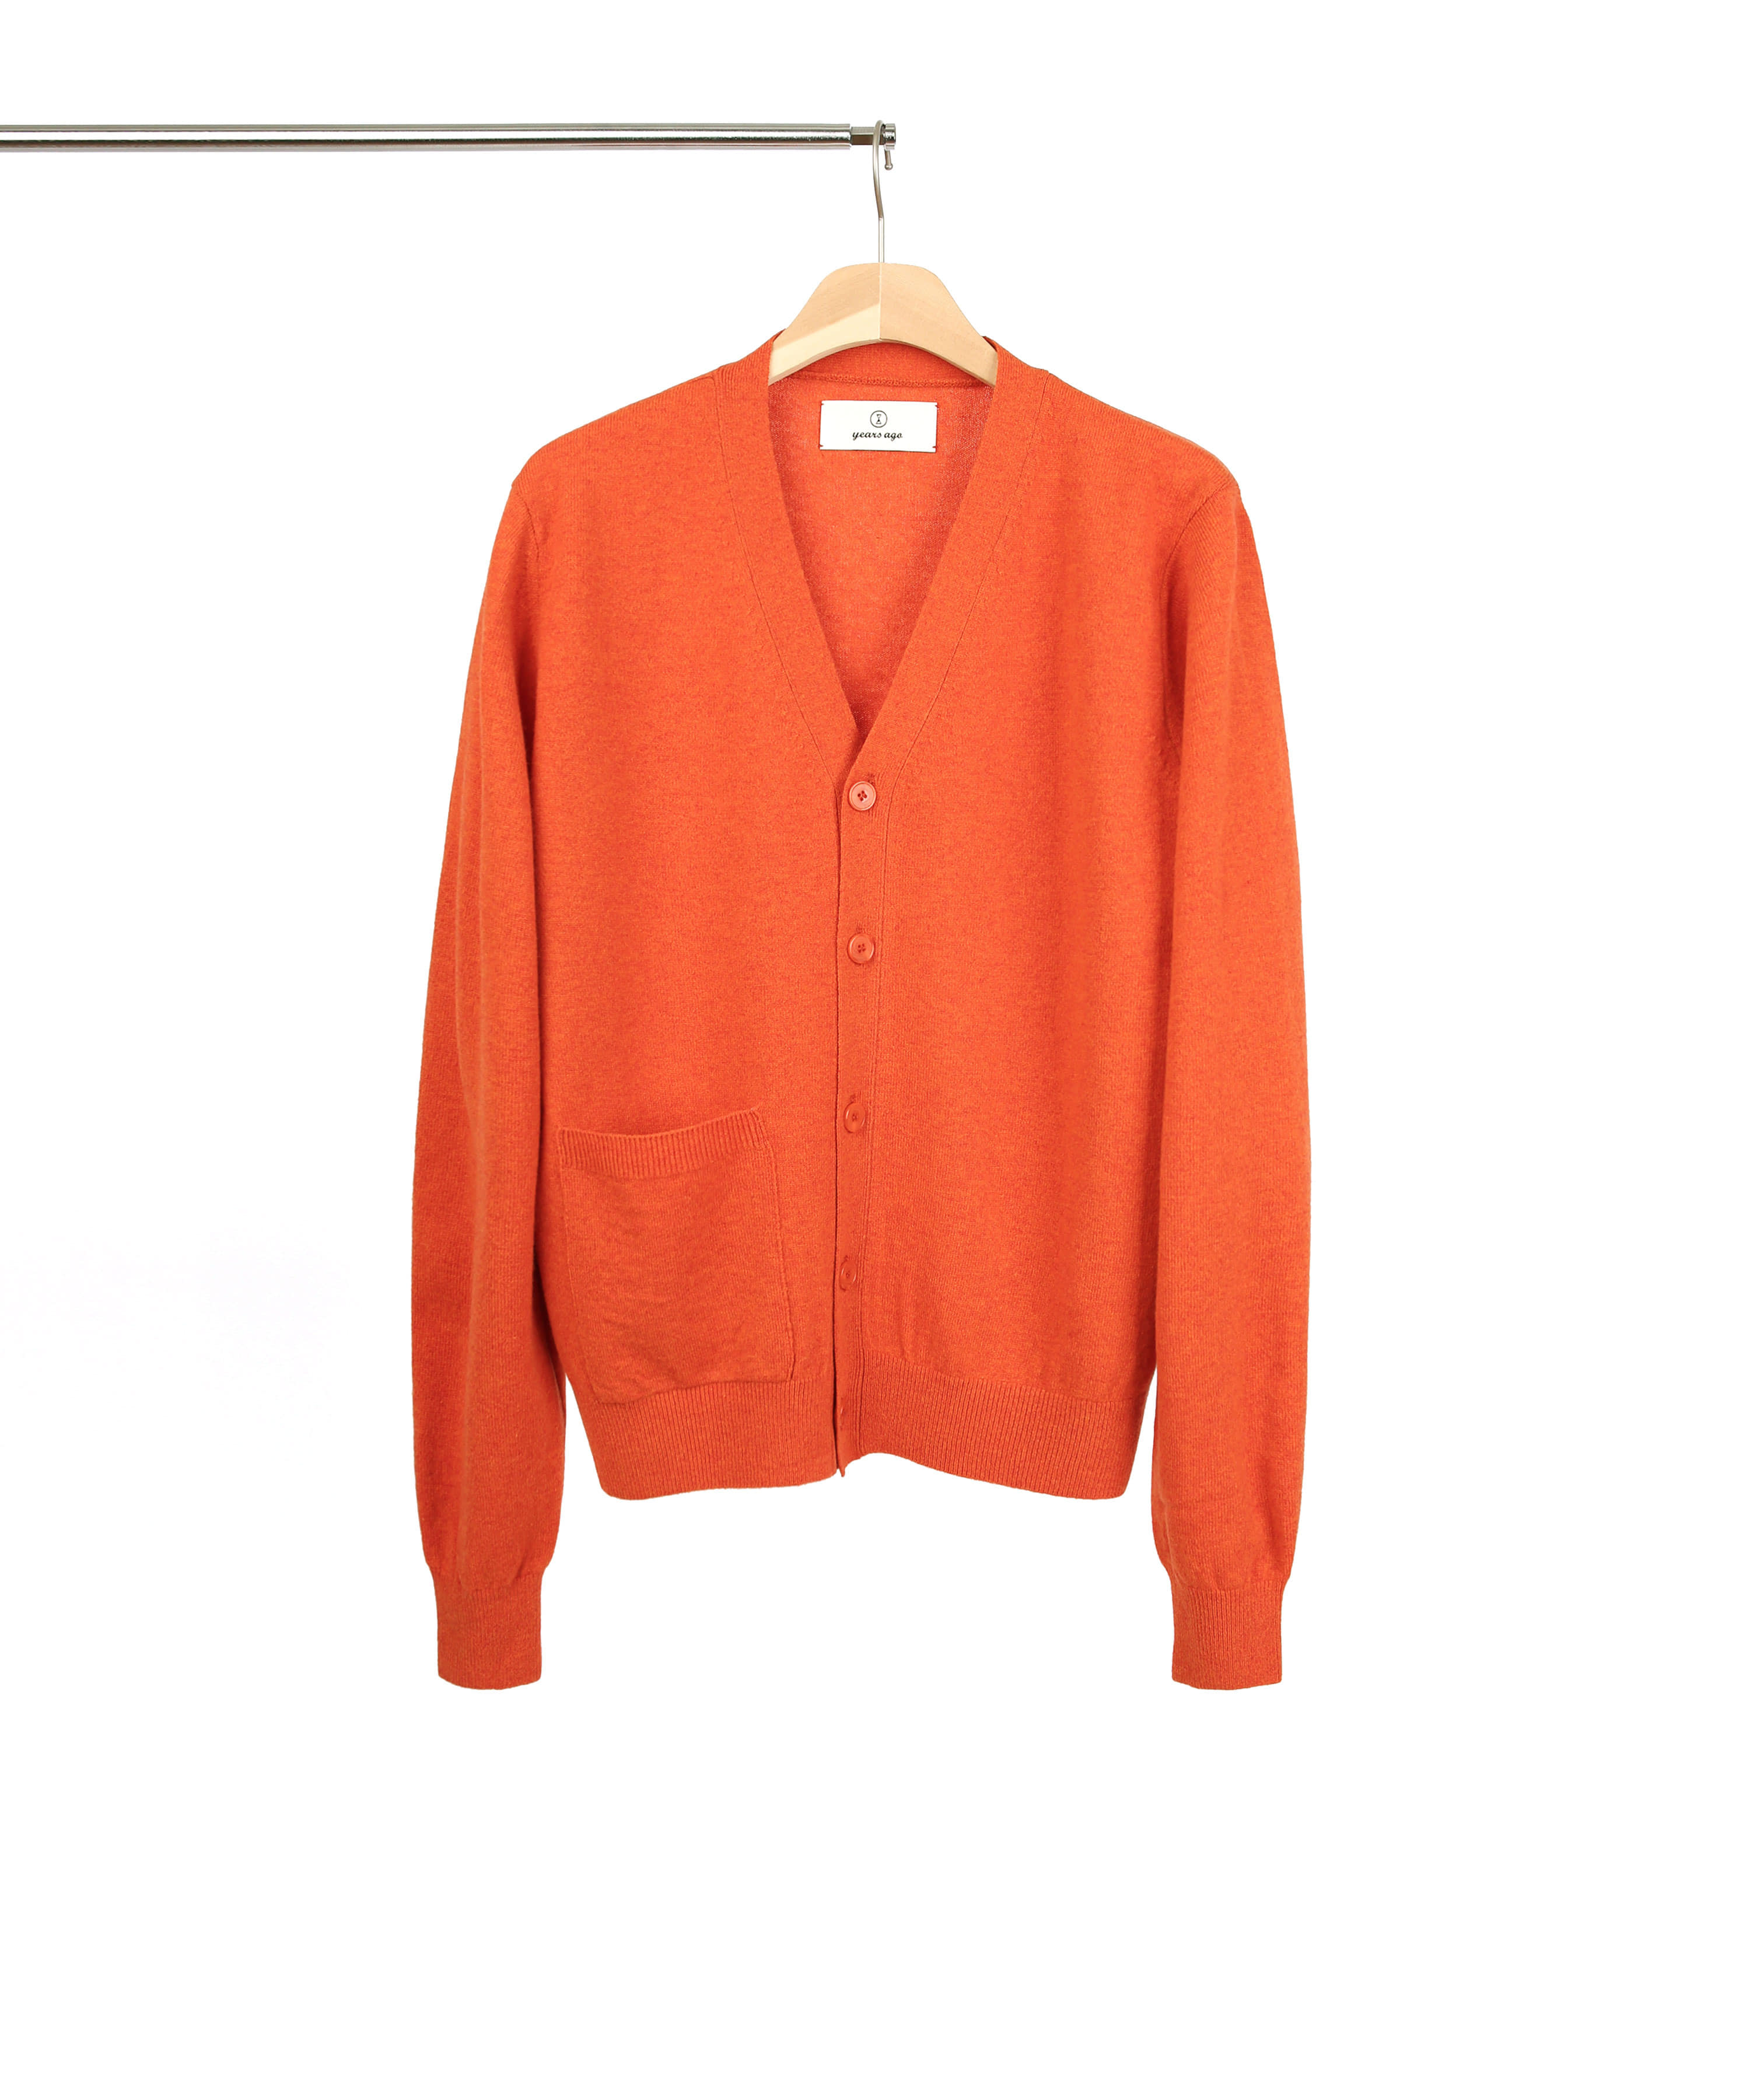 [RESTOCK] MELANGE ORANGE ROVER WOOL CARDIGAN 02 (4월 29일 순차발송)